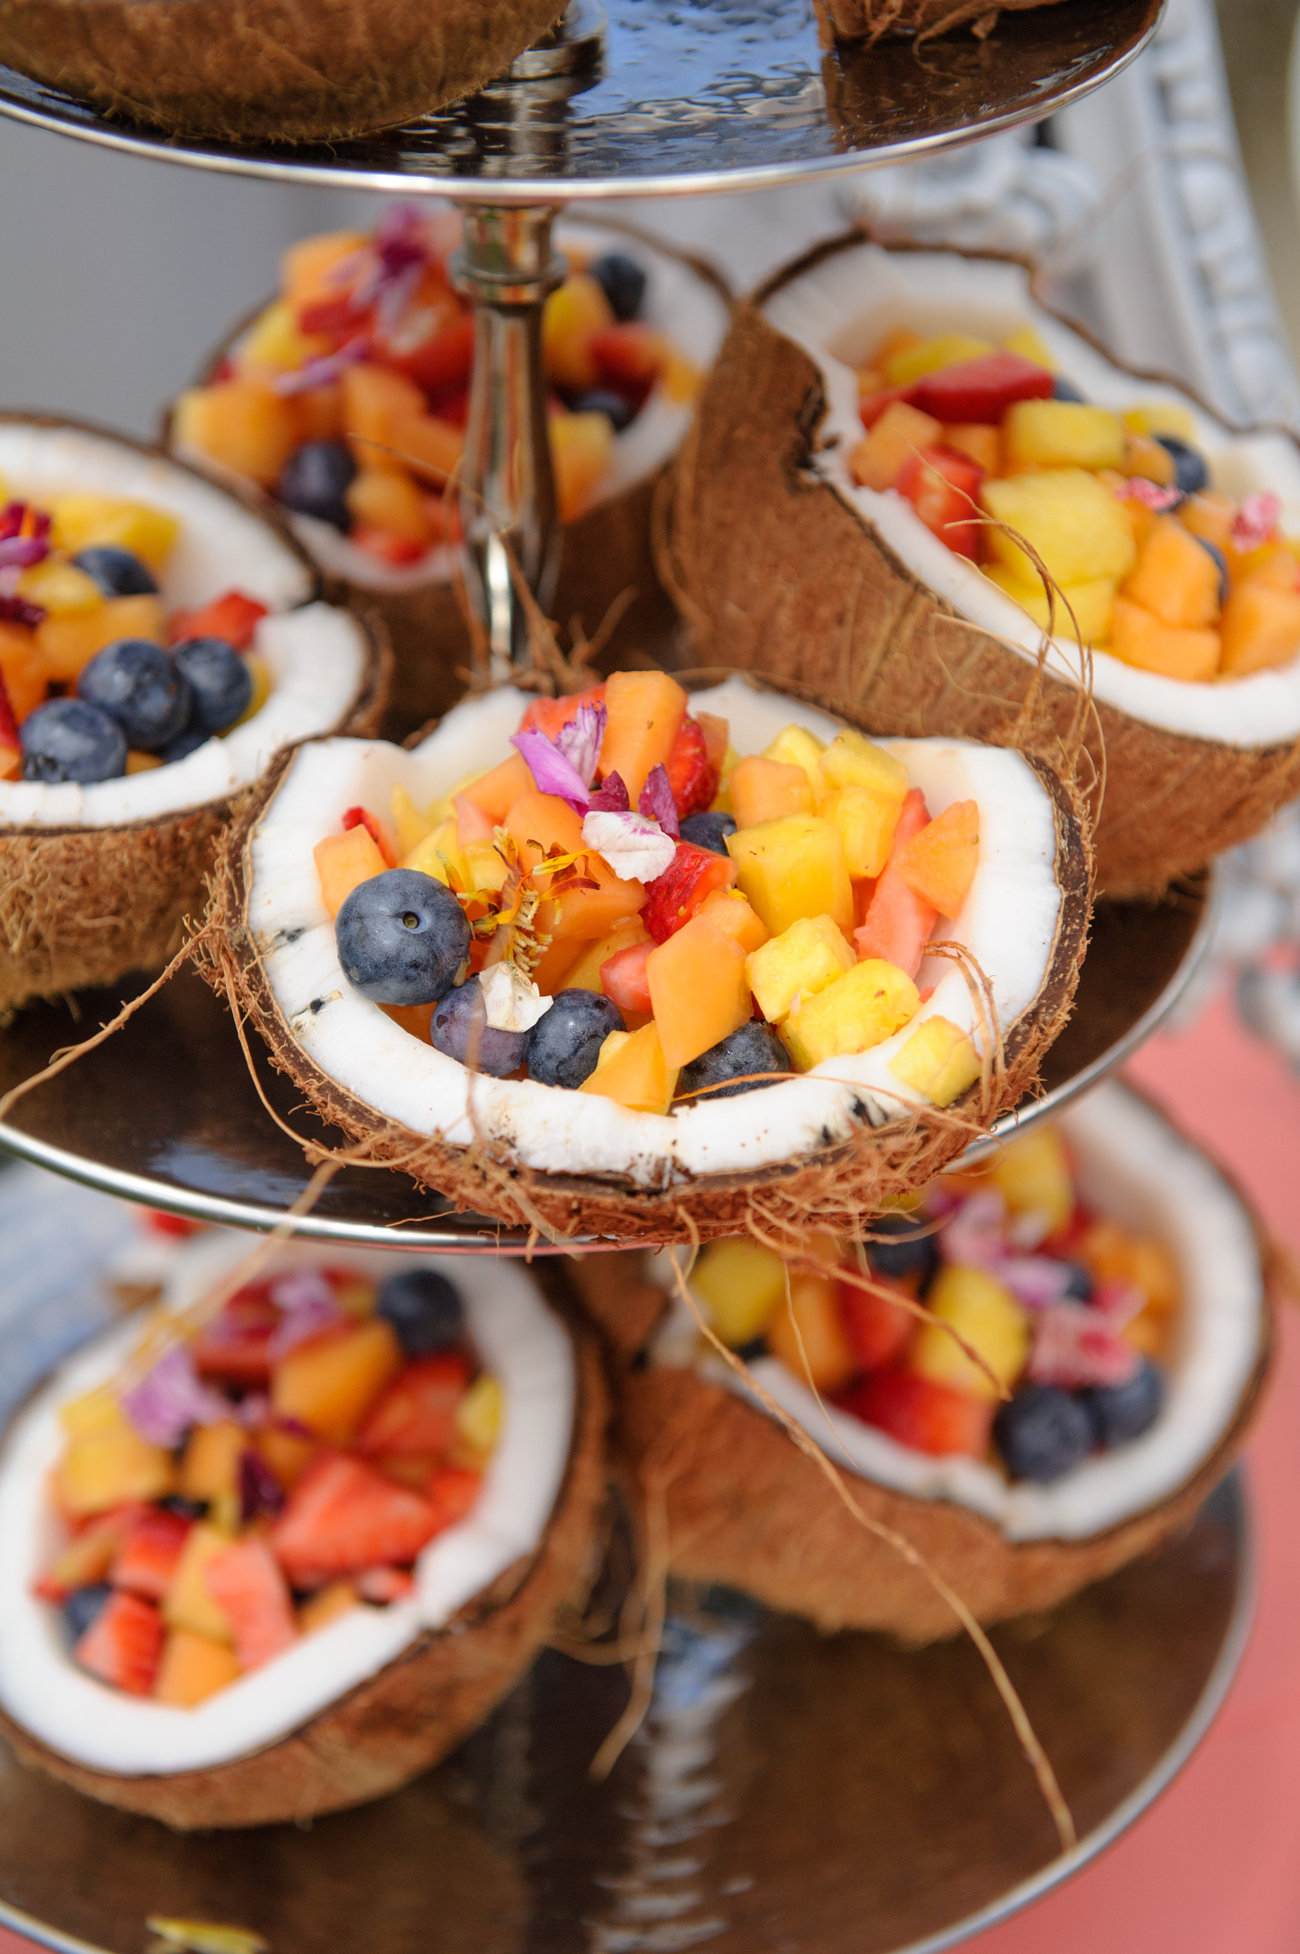 coconut bowls filled with mixed fruit